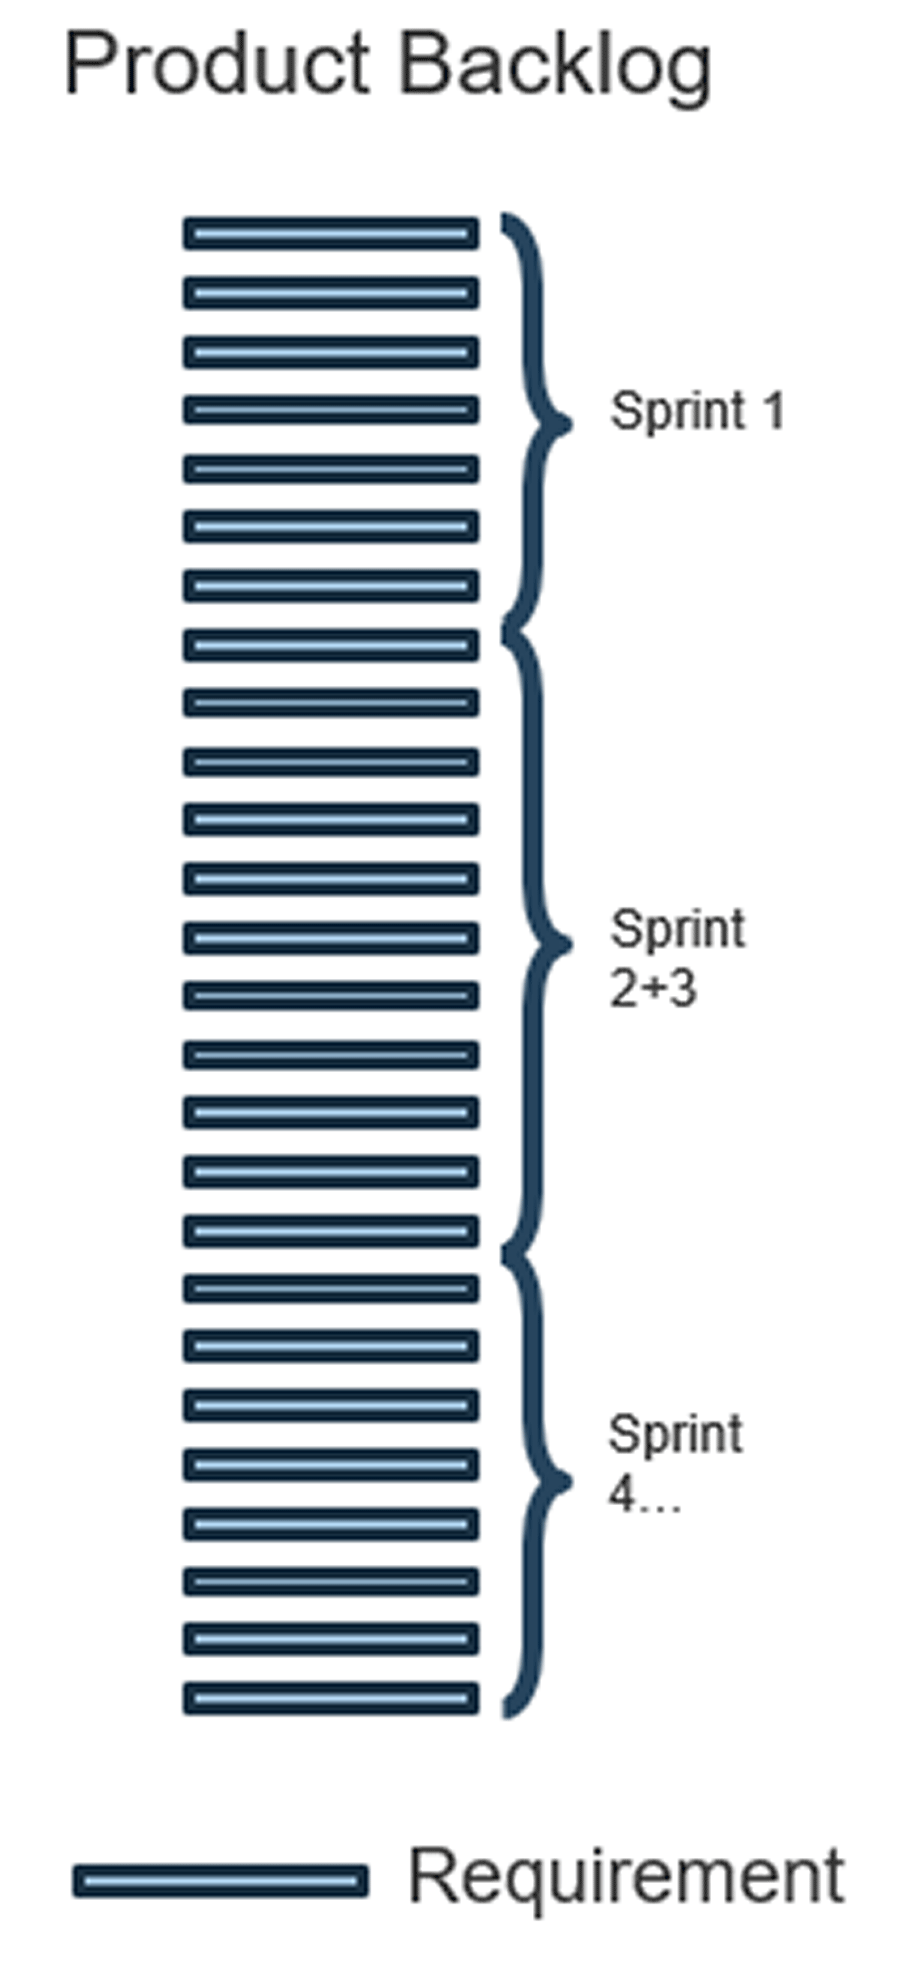 Image shows an example of product backlog and includes sprint 1-4